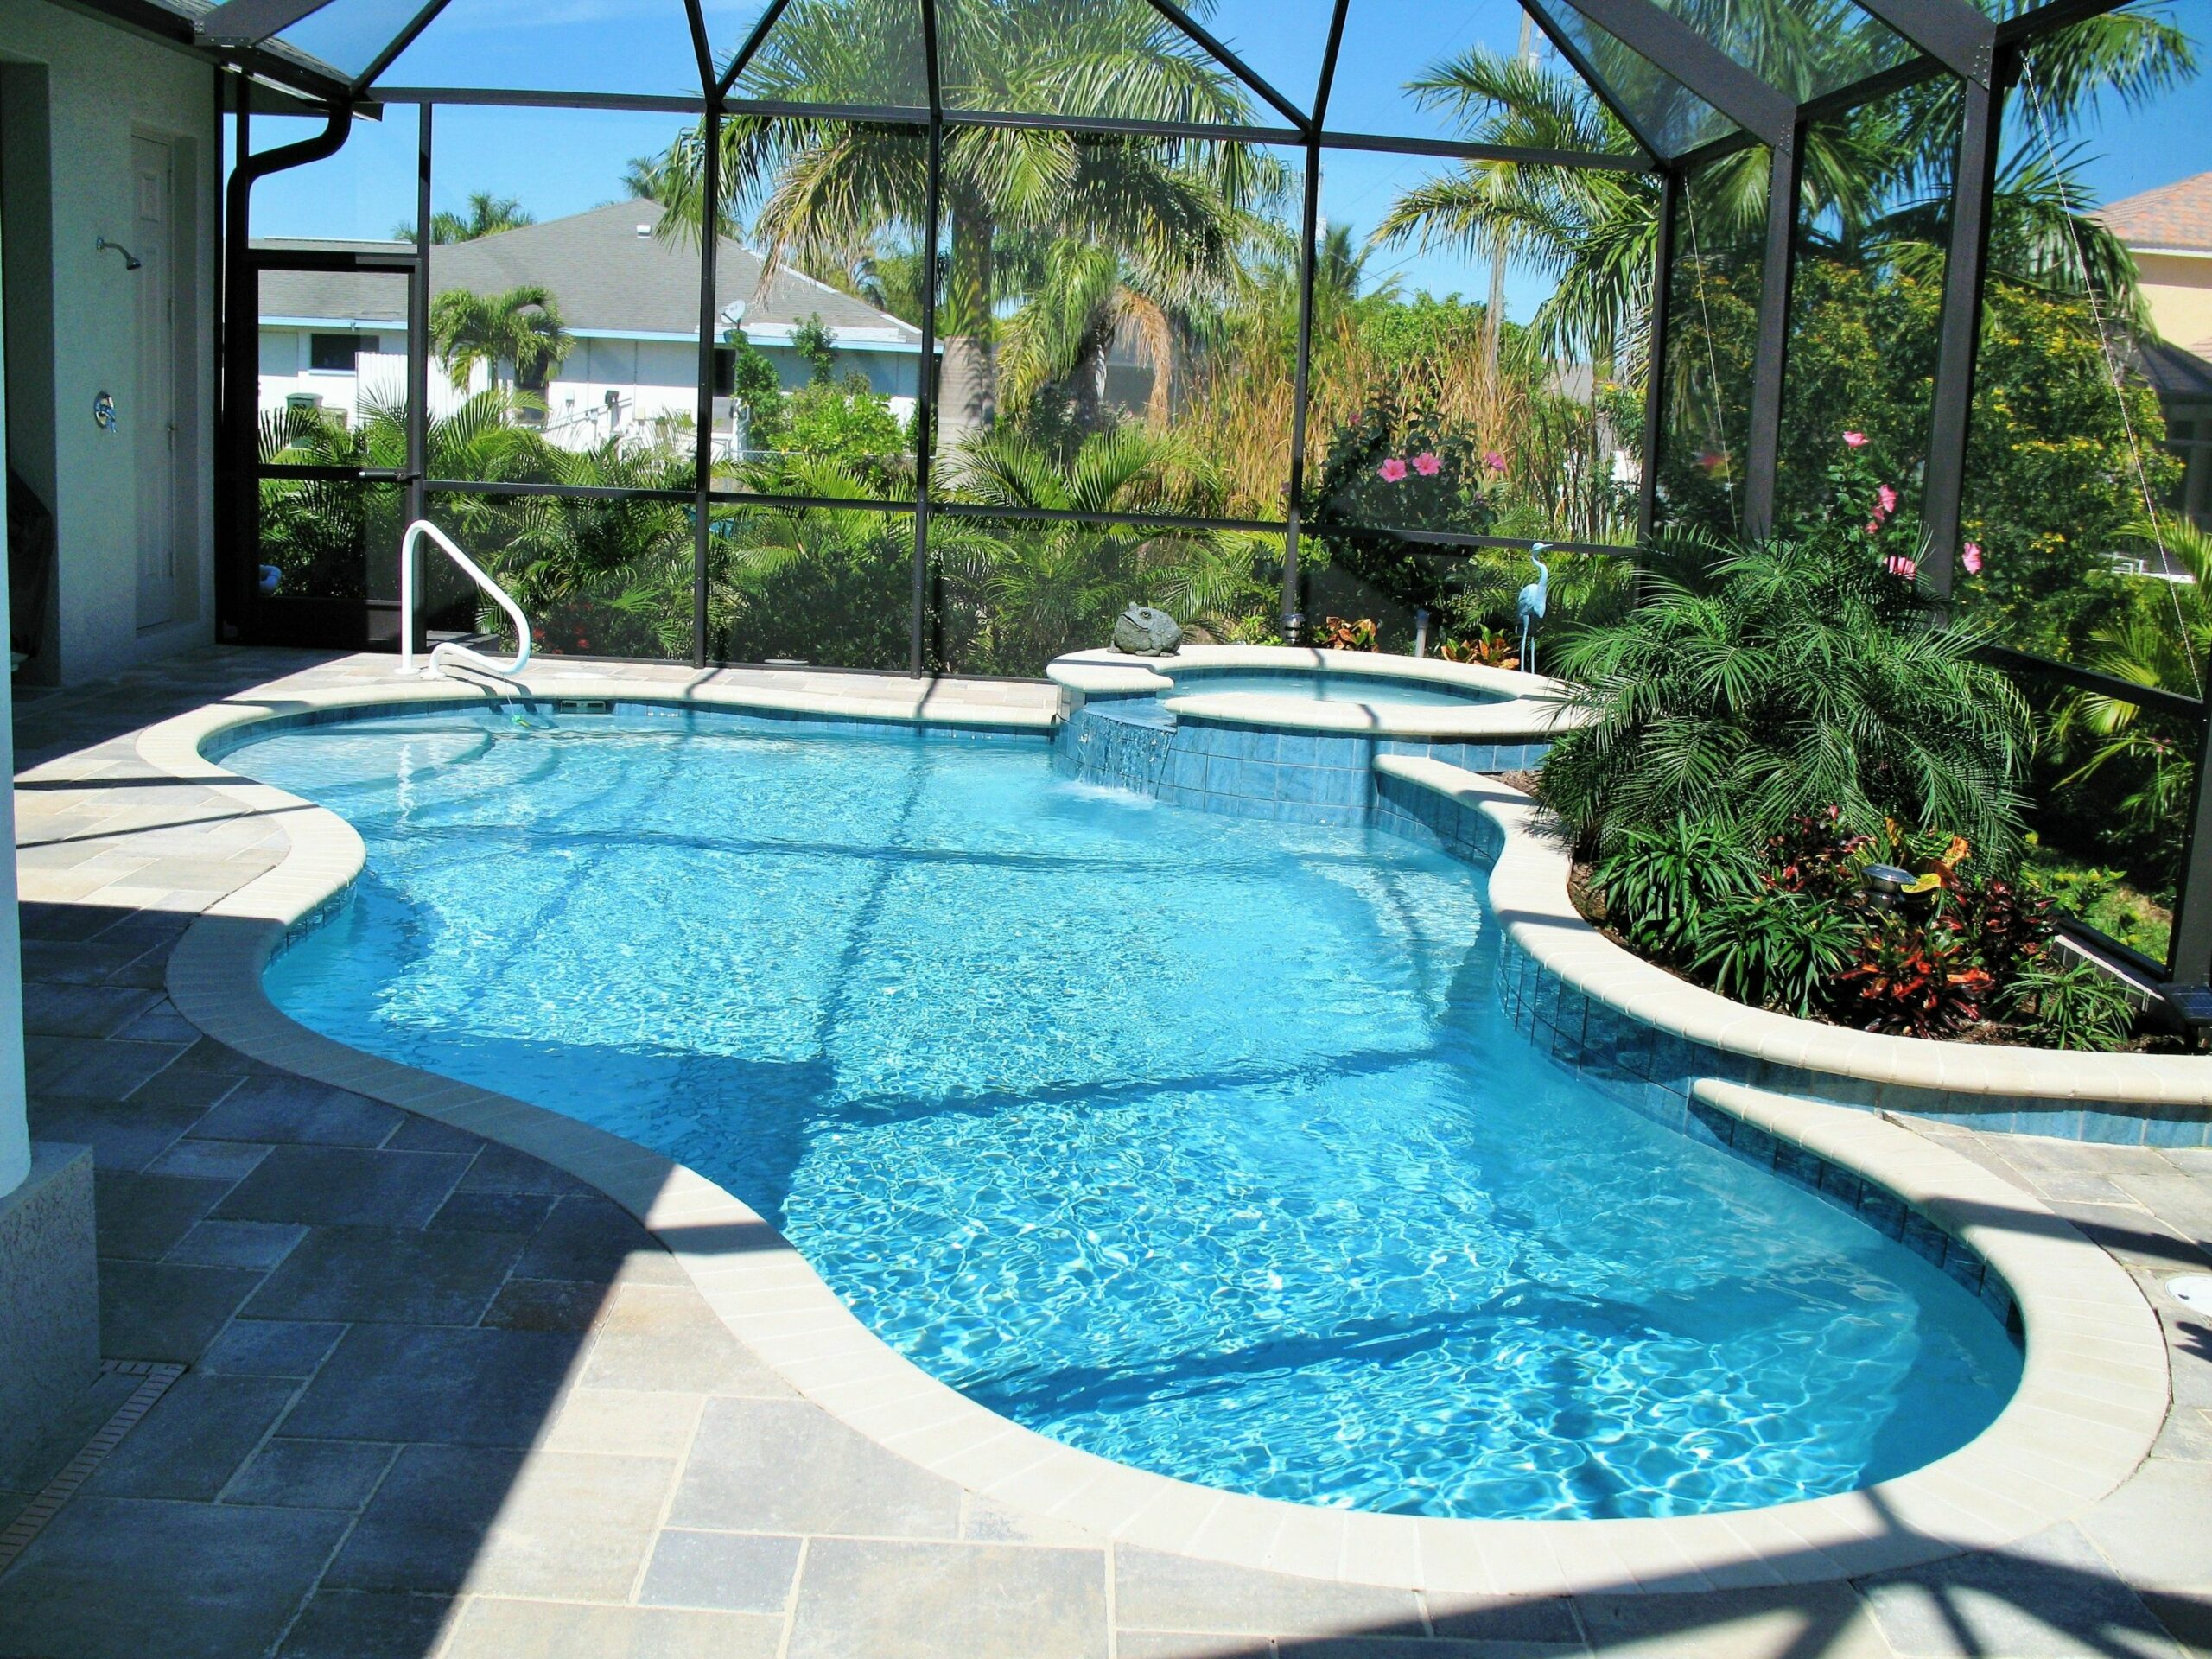 concrete pool jacksonville florida | Swimming pools, Concrete ...